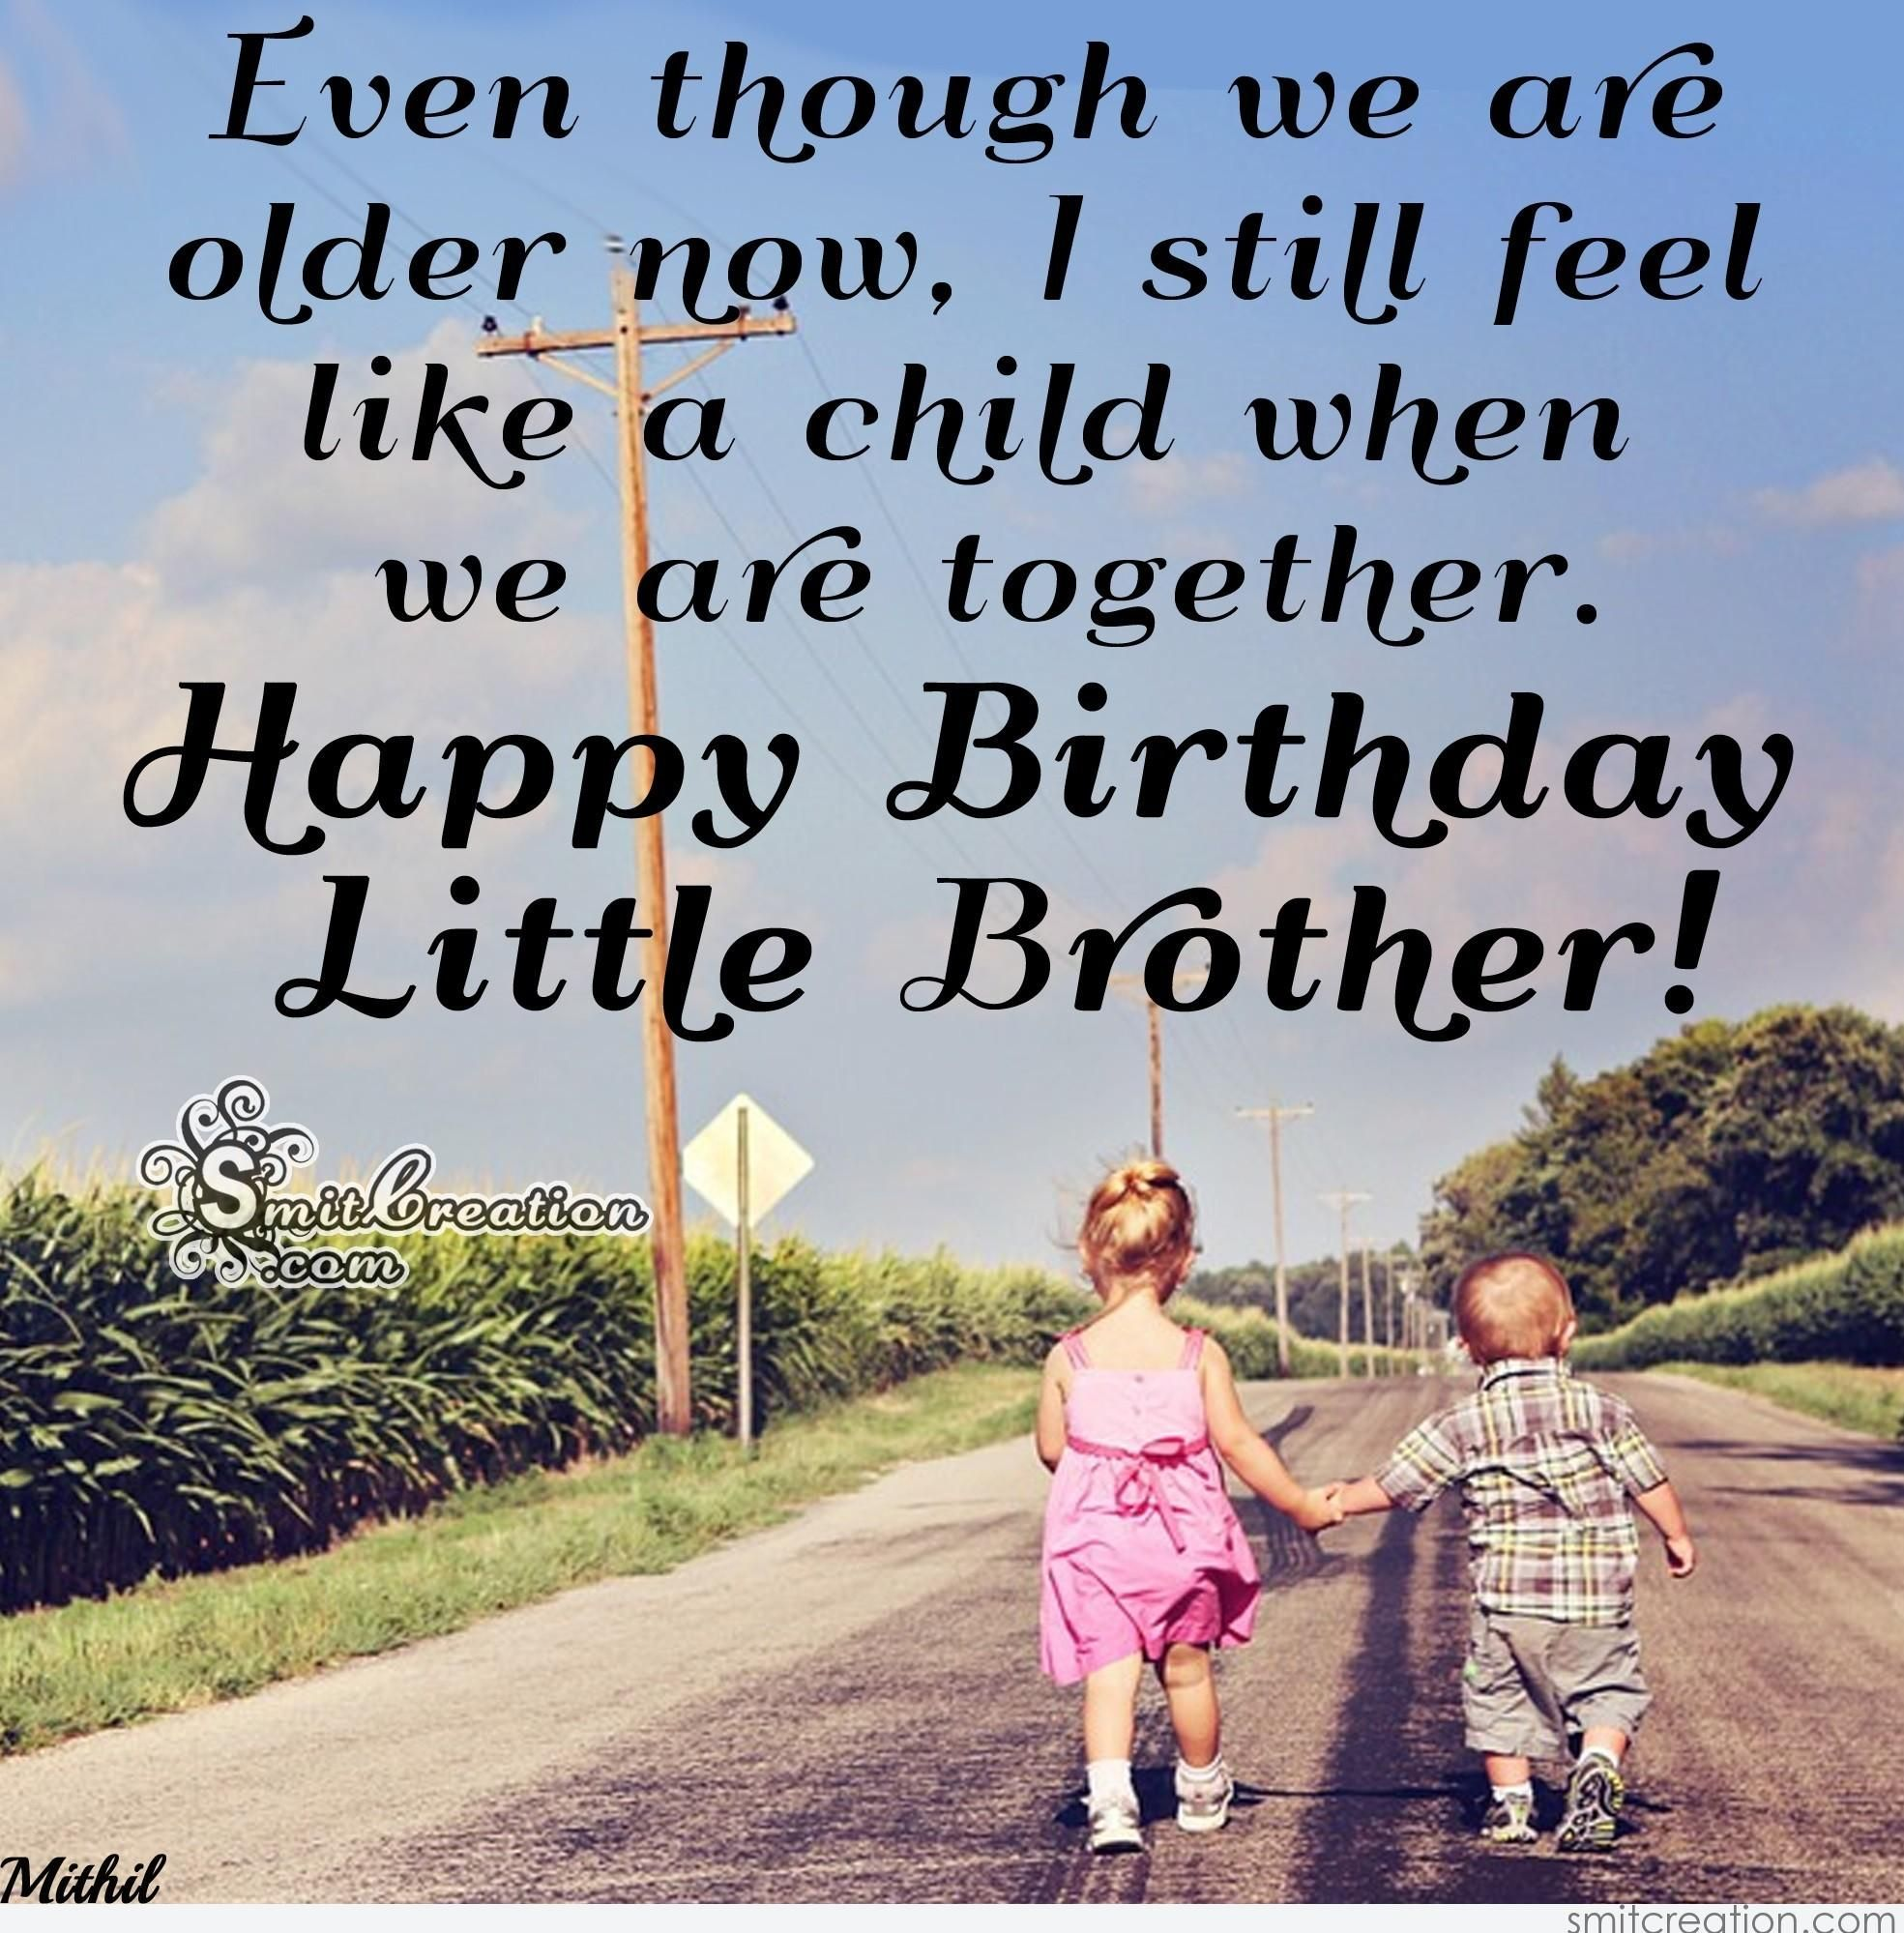 Happy birthday wishes to younger brother yahoo india image happy birthday wishes to younger brother yahoo india image search results m4hsunfo